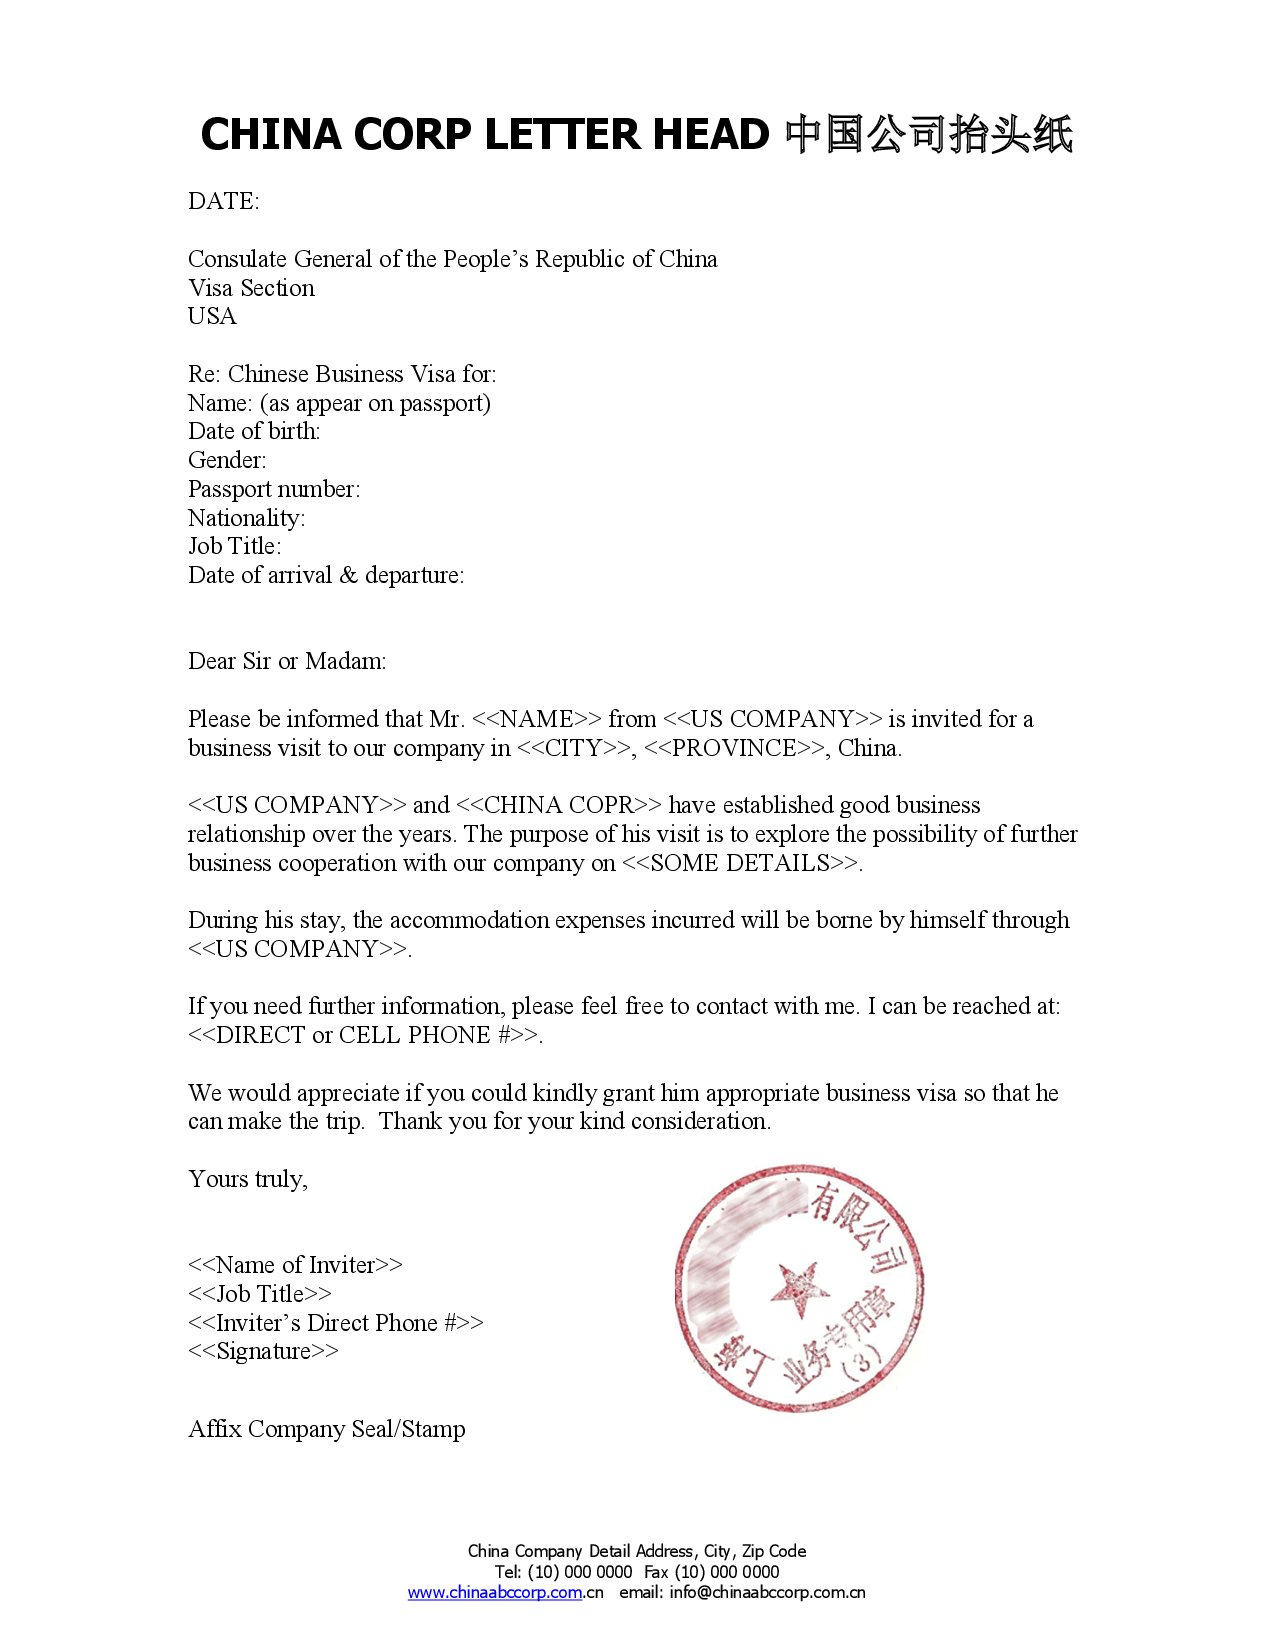 Format invitation letter for business visa to china lettervisa format invitation letter for business visa to china lettervisa invitation letter application letter sample altavistaventures Image collections